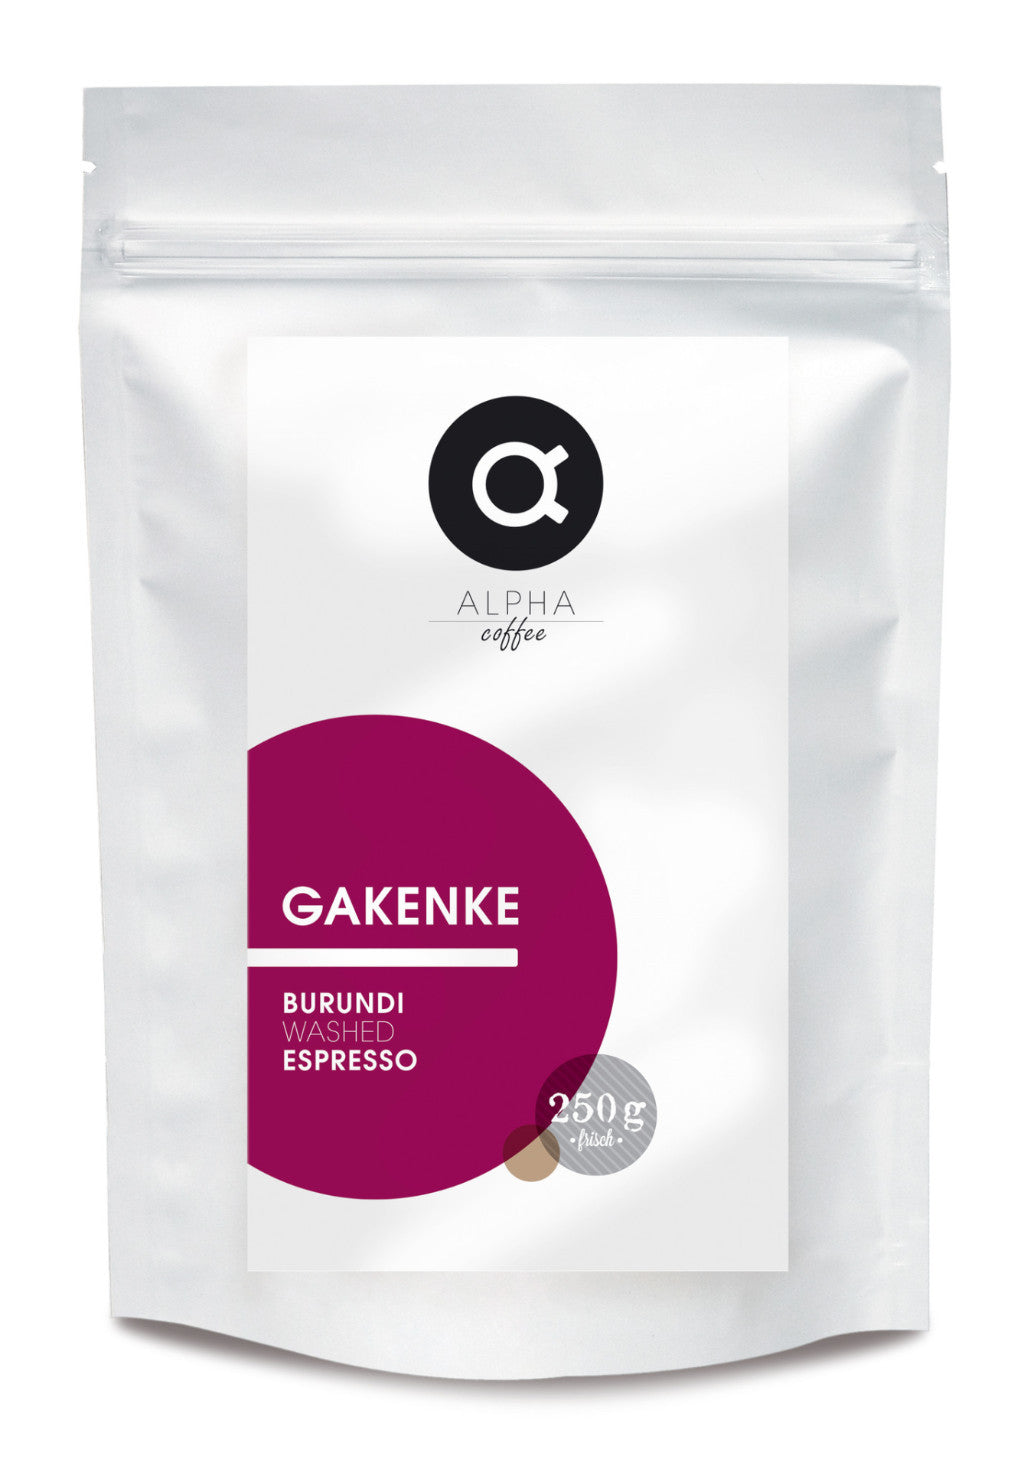 ALPHA coffee - GAKENKE - BURUNDI - ESPRESSO-WASHED-250 Gramm